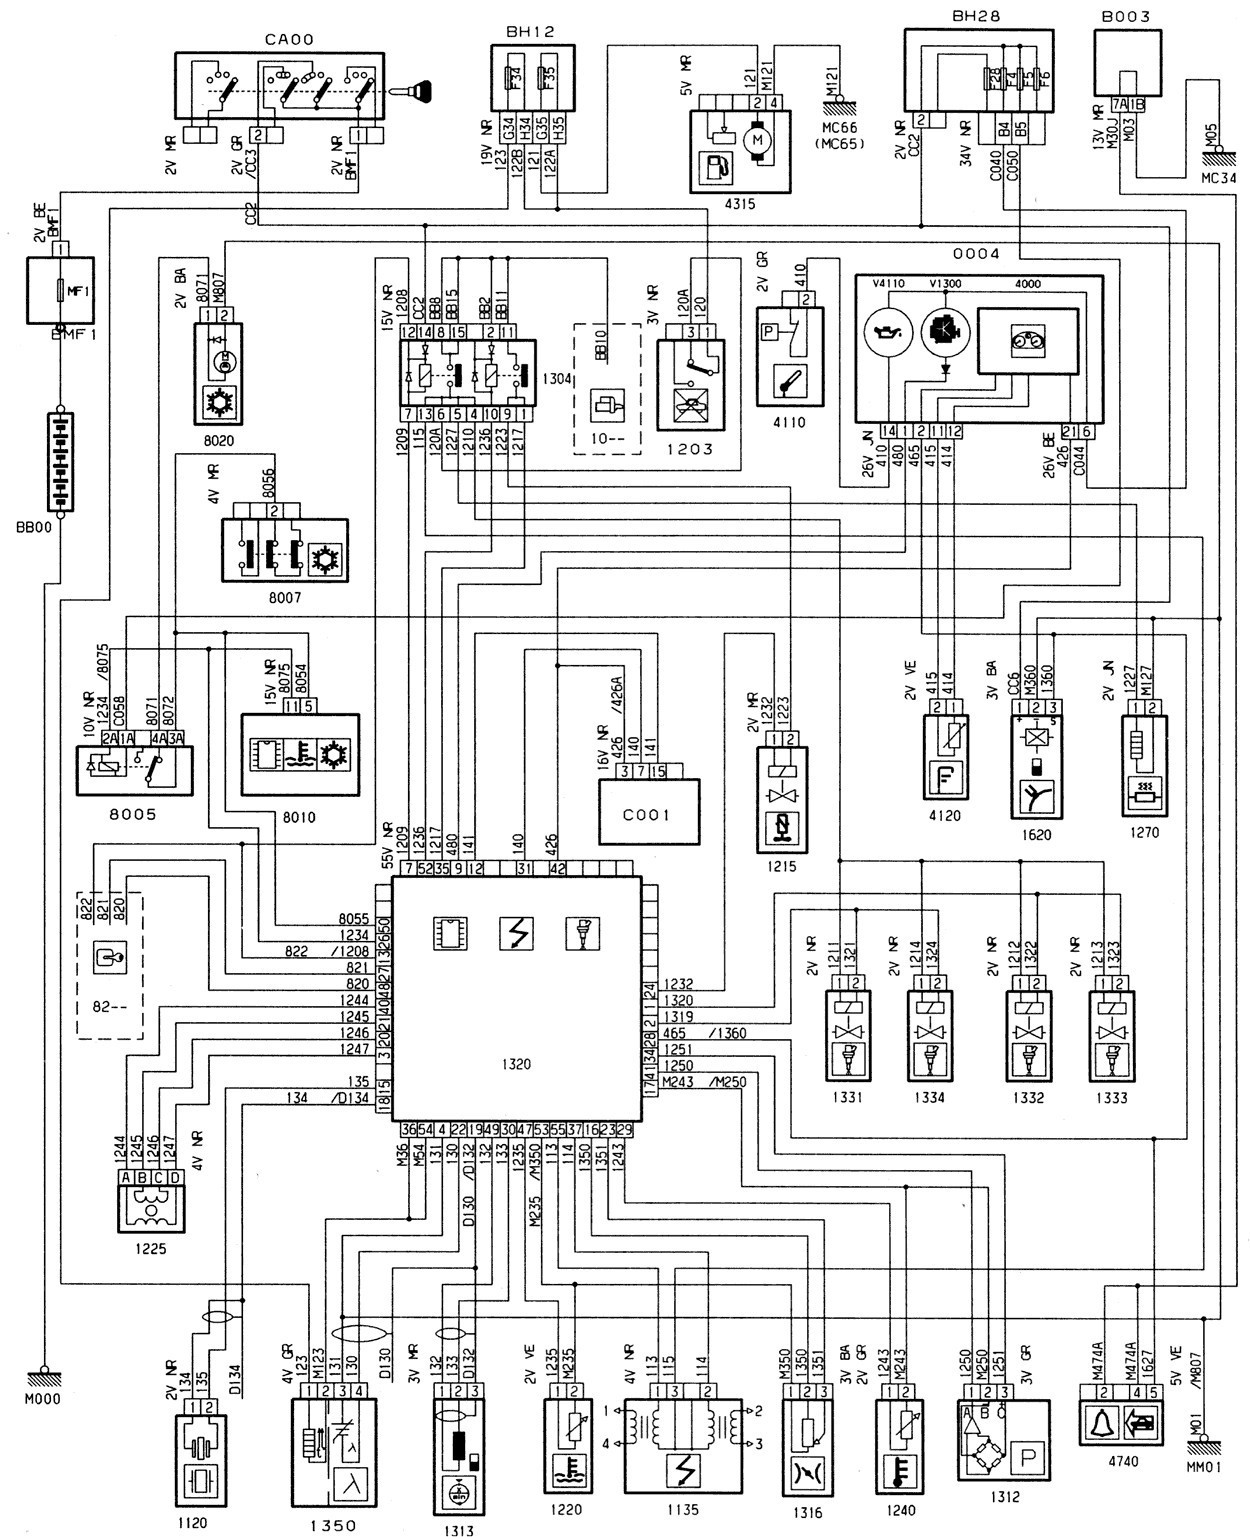 hight resolution of peugeot 206 engine diagram peugeot wiring diagrams mesmerizing afif of peugeot 206 engine diagram 206 gti